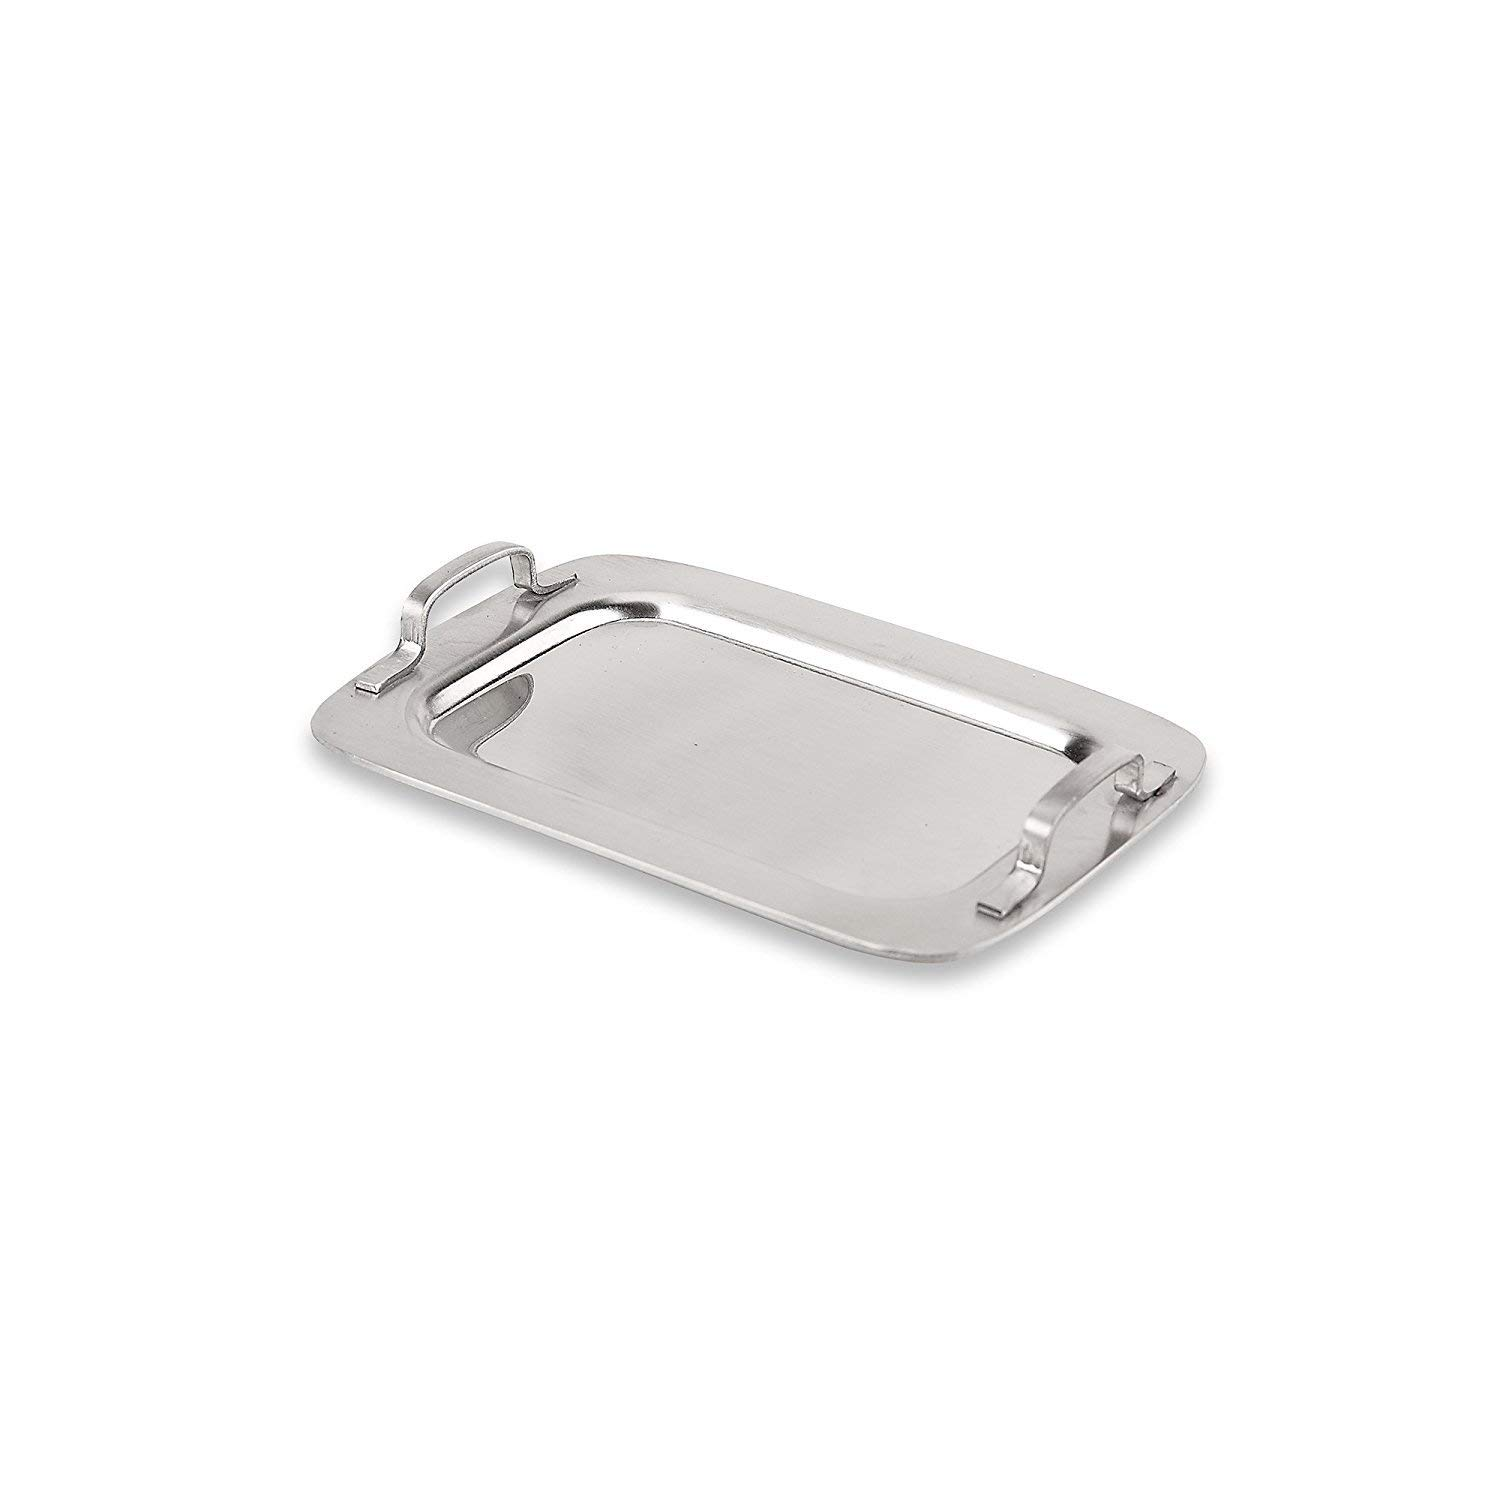 IMPULSE! Zurich Mini Cocktail Tray by (8136-1)-Stainless Steel, accessory, Modern,Cocktail,catering